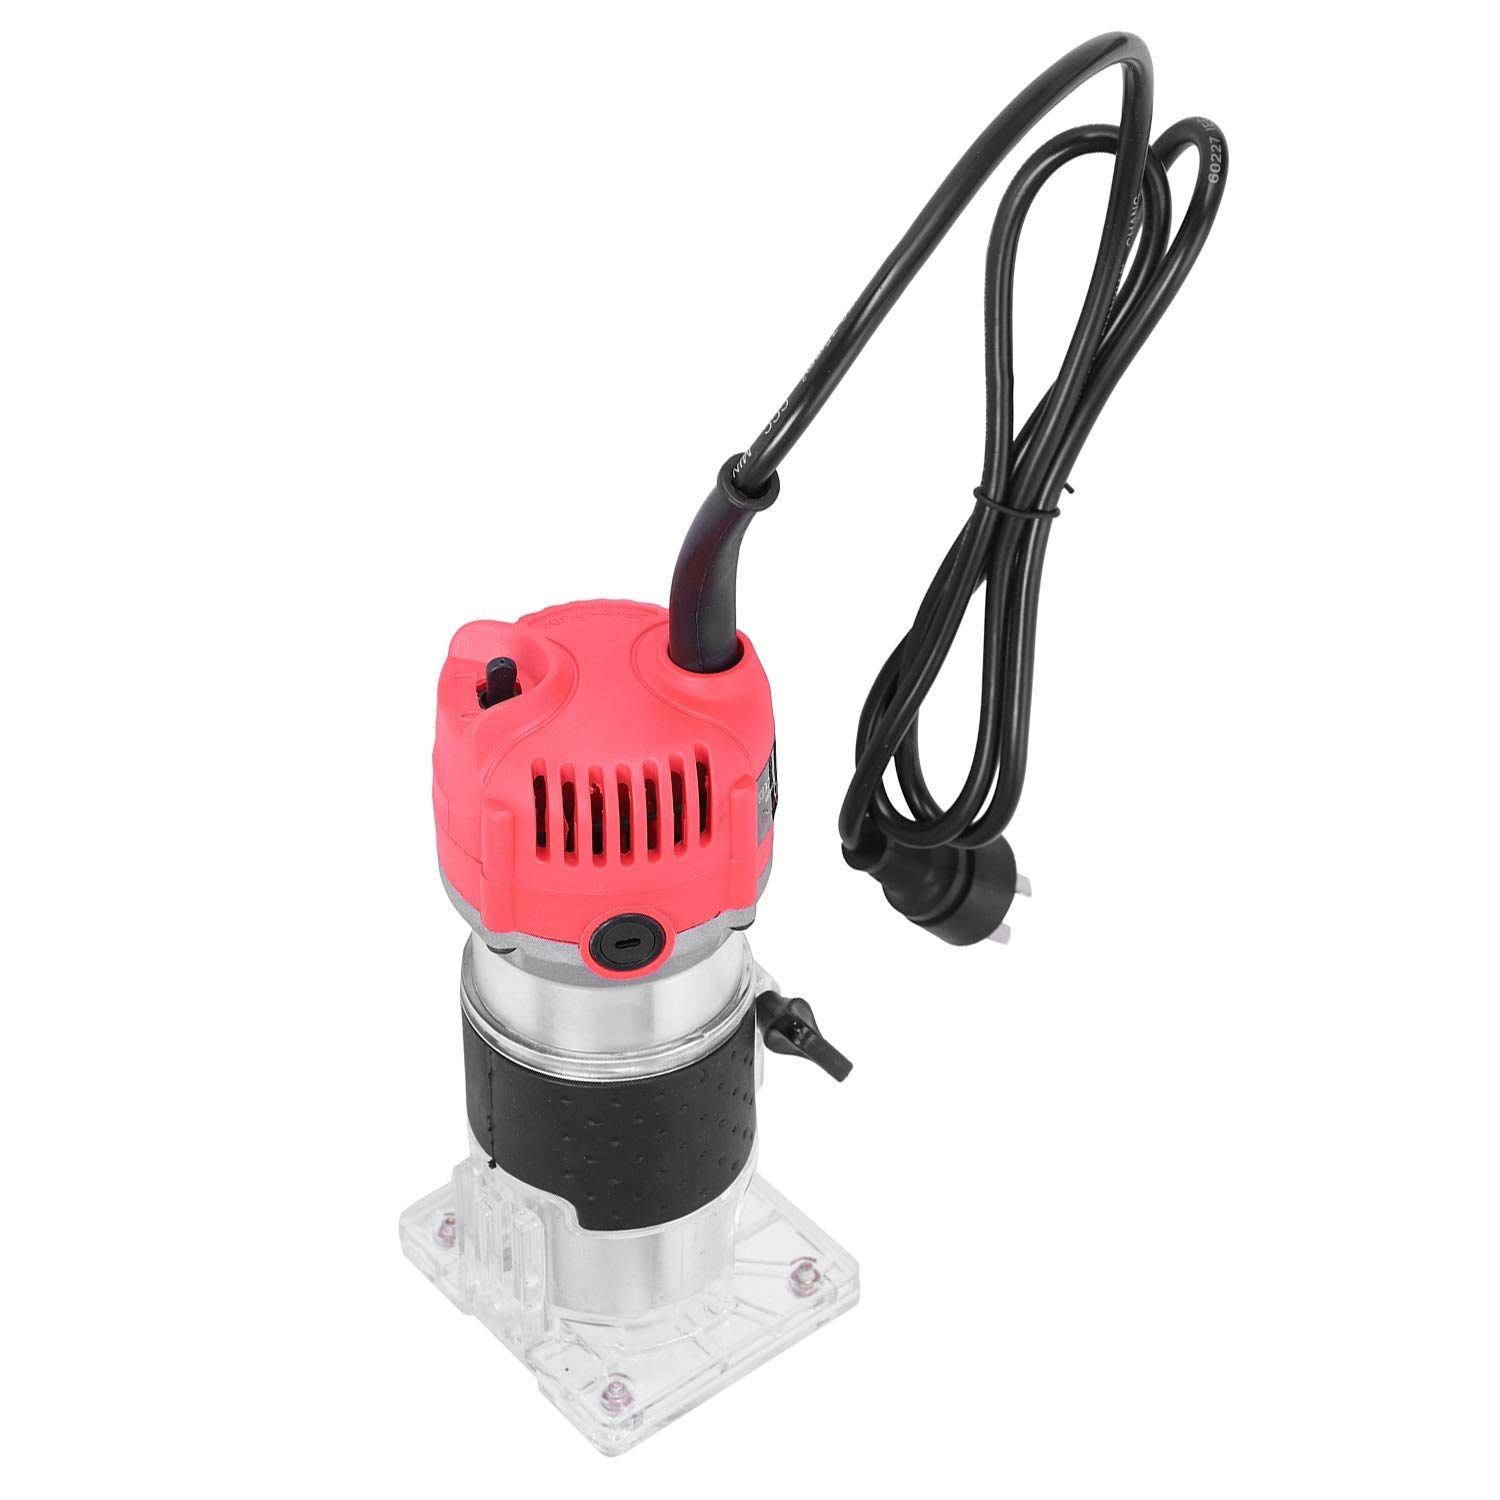 Moligh doll New 620W 110V Wood Trim Router 6.35mm Collection Diameter Electric Manual Trimmer Woodworking Laminated Palm Router Woodworking Tools US Plug